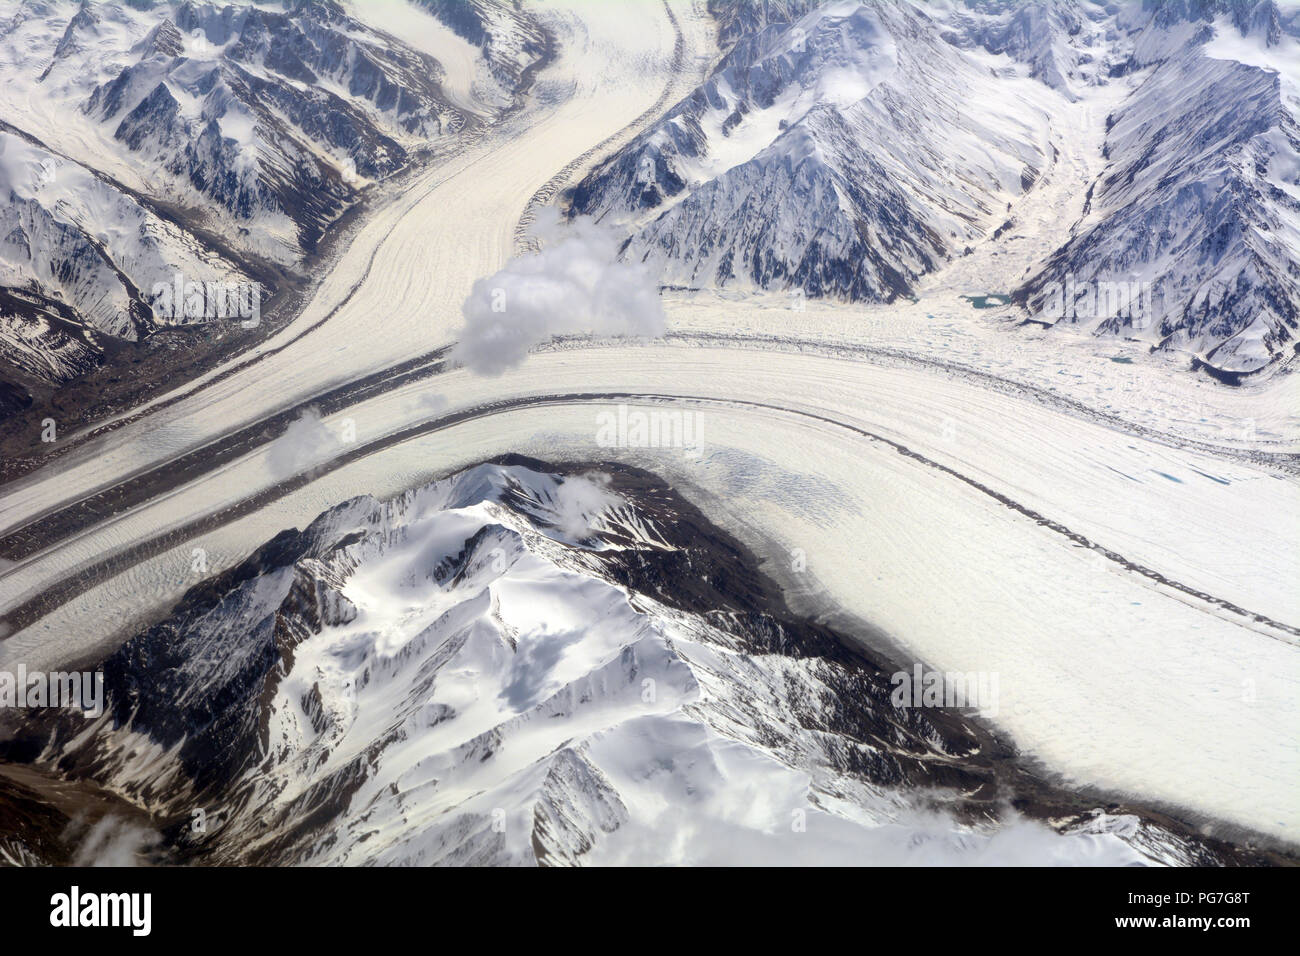 An aerial shot of the Kaskawalsh glacier in the icefields of the Saint Elias Mountains, Kluane National Park, Yukon Territory, Canada. - Stock Image